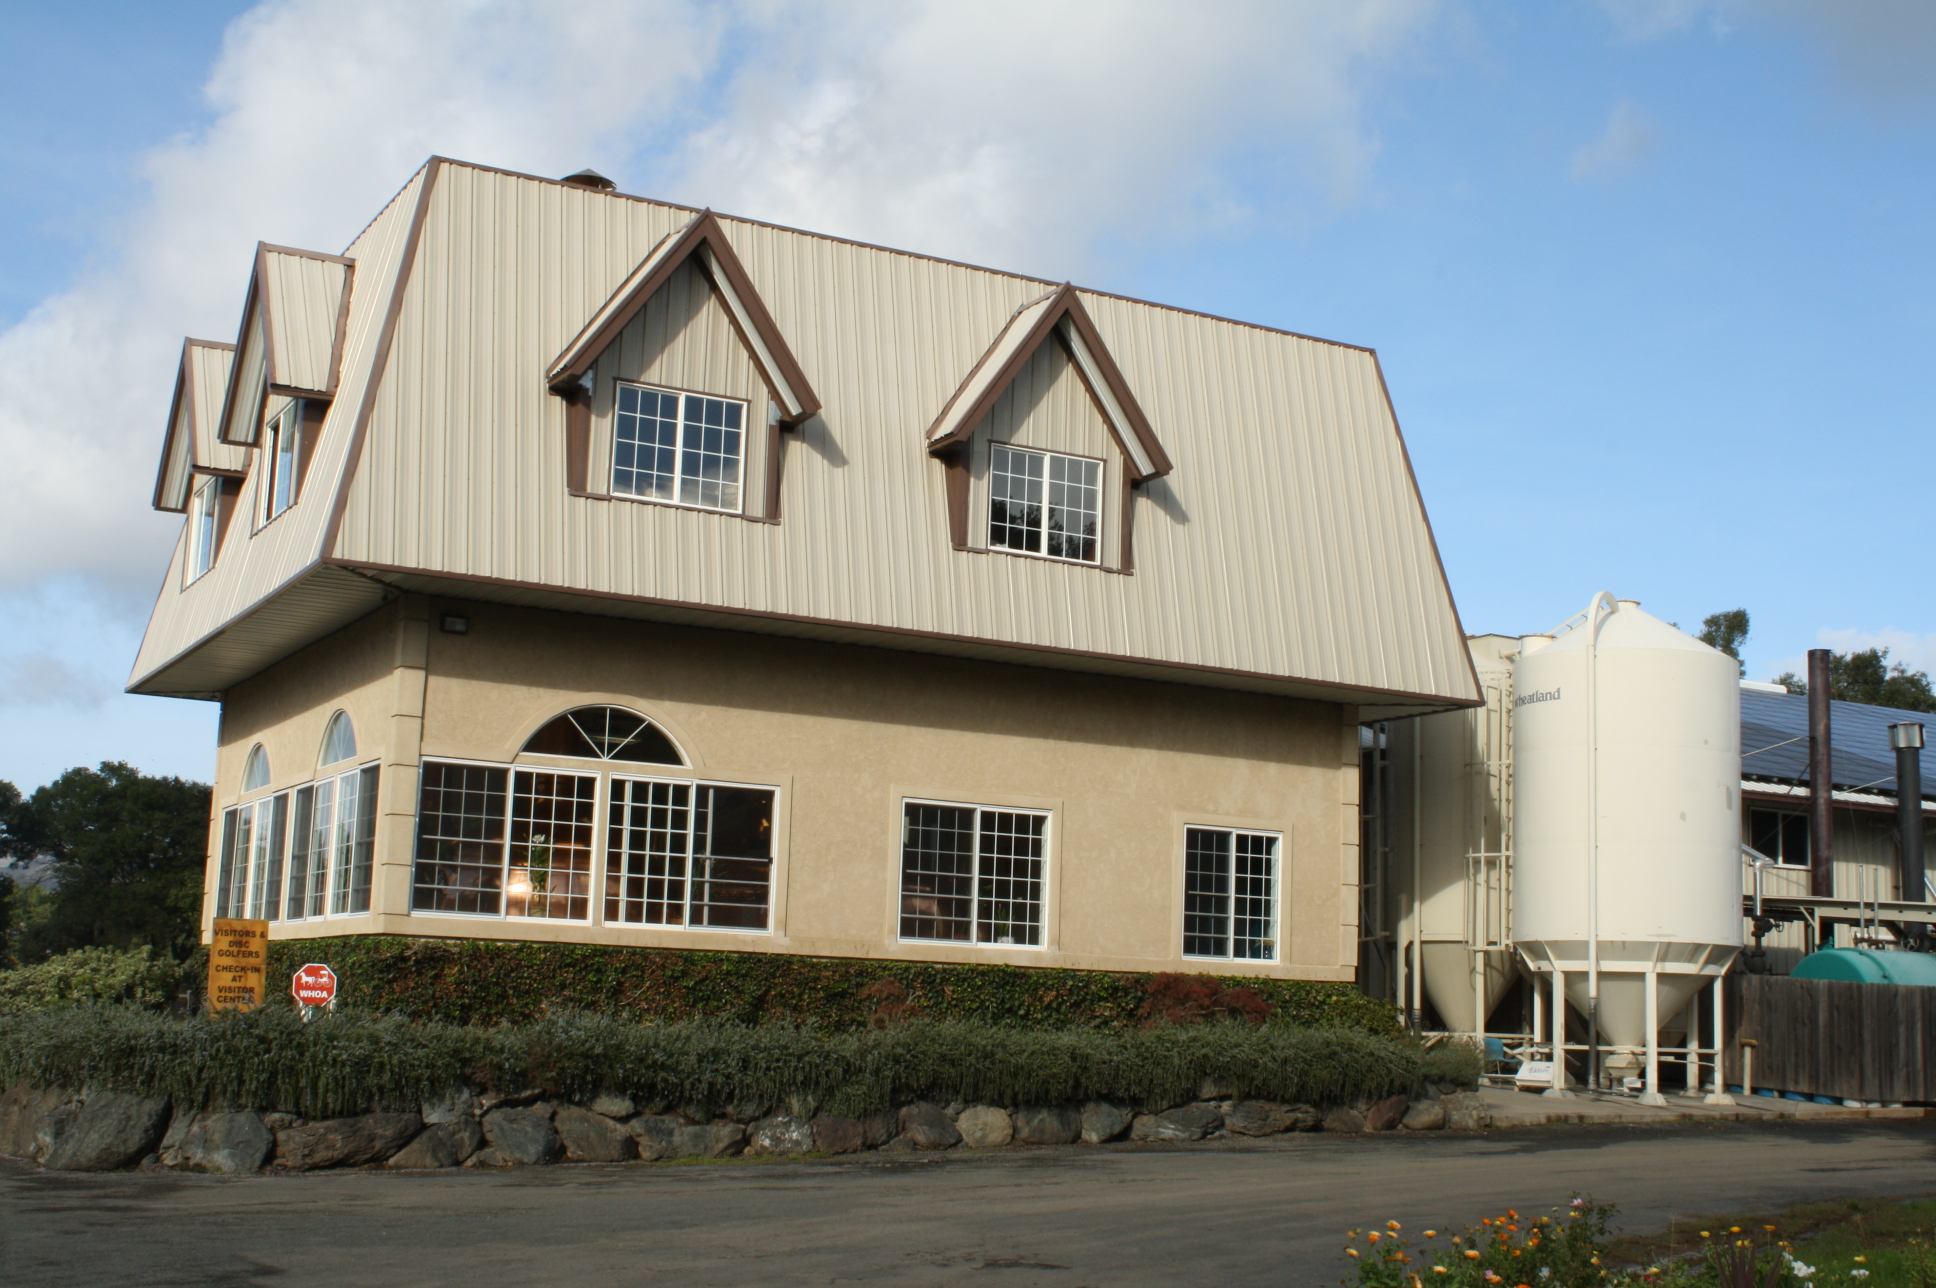 Andersen Valley Brewing Company's Brewhouse in Boonville, California